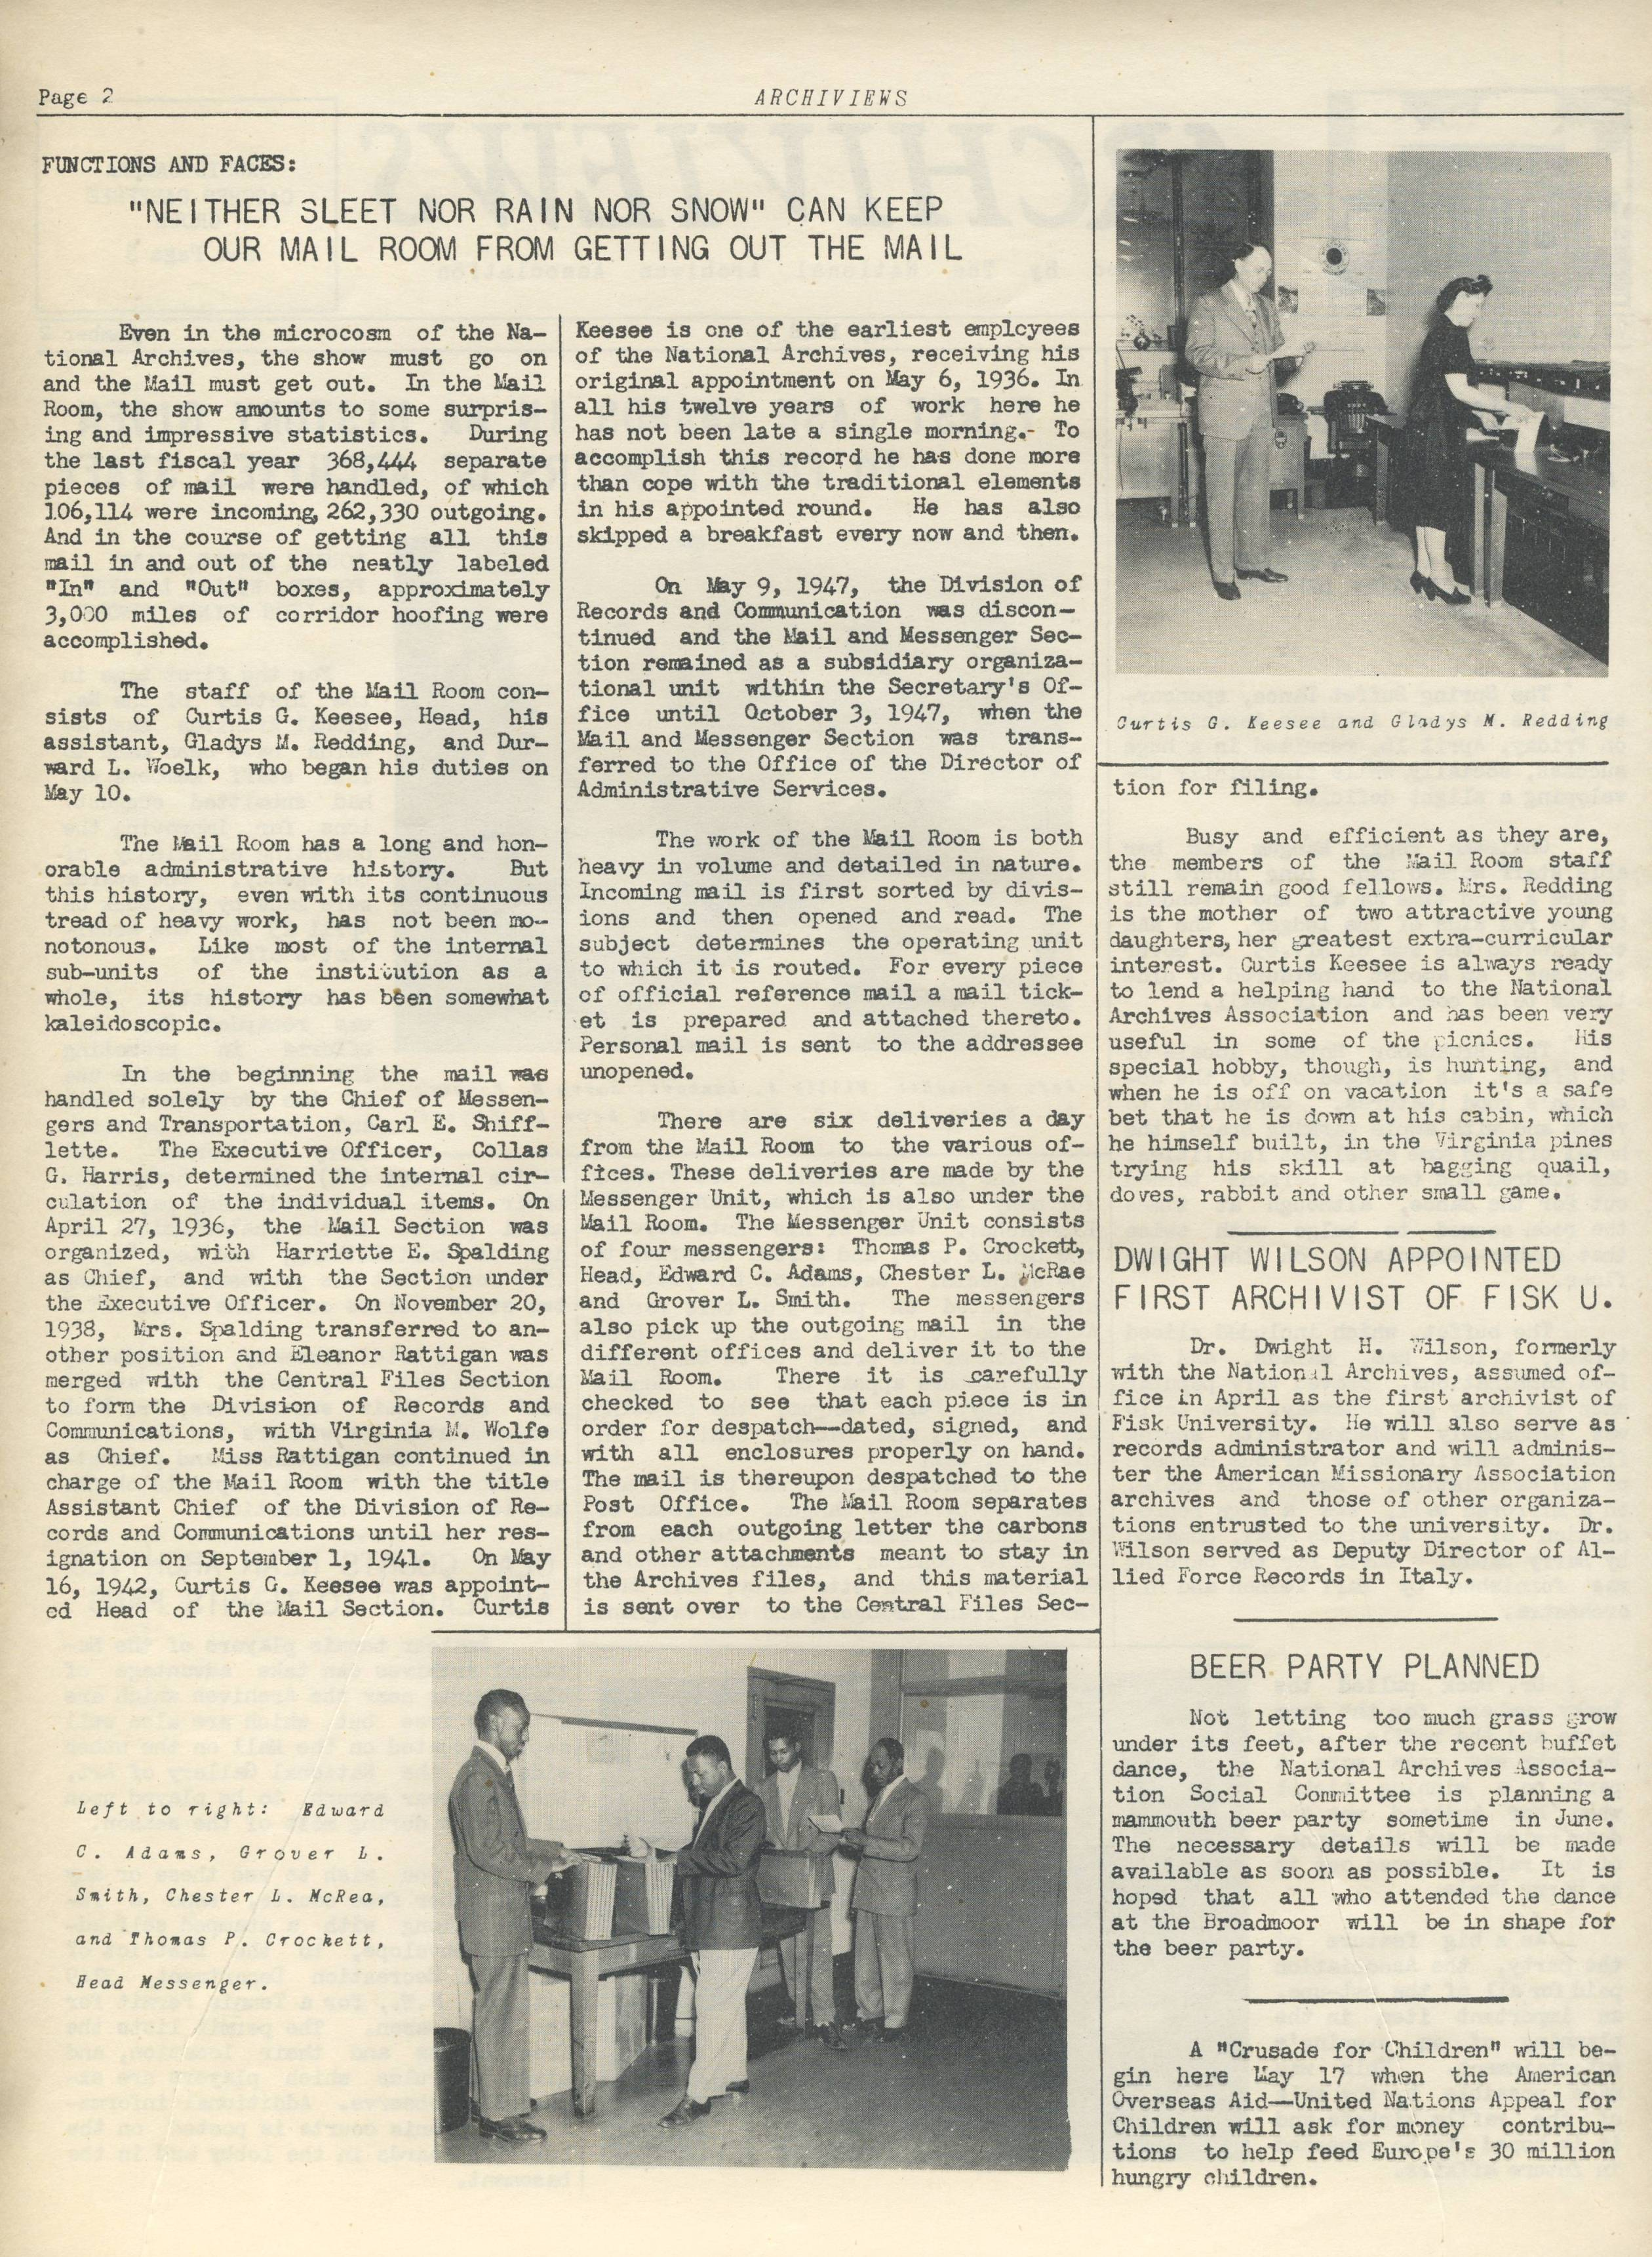 Archiviews, May 1948 - Story about Mail Room Staff.jpg